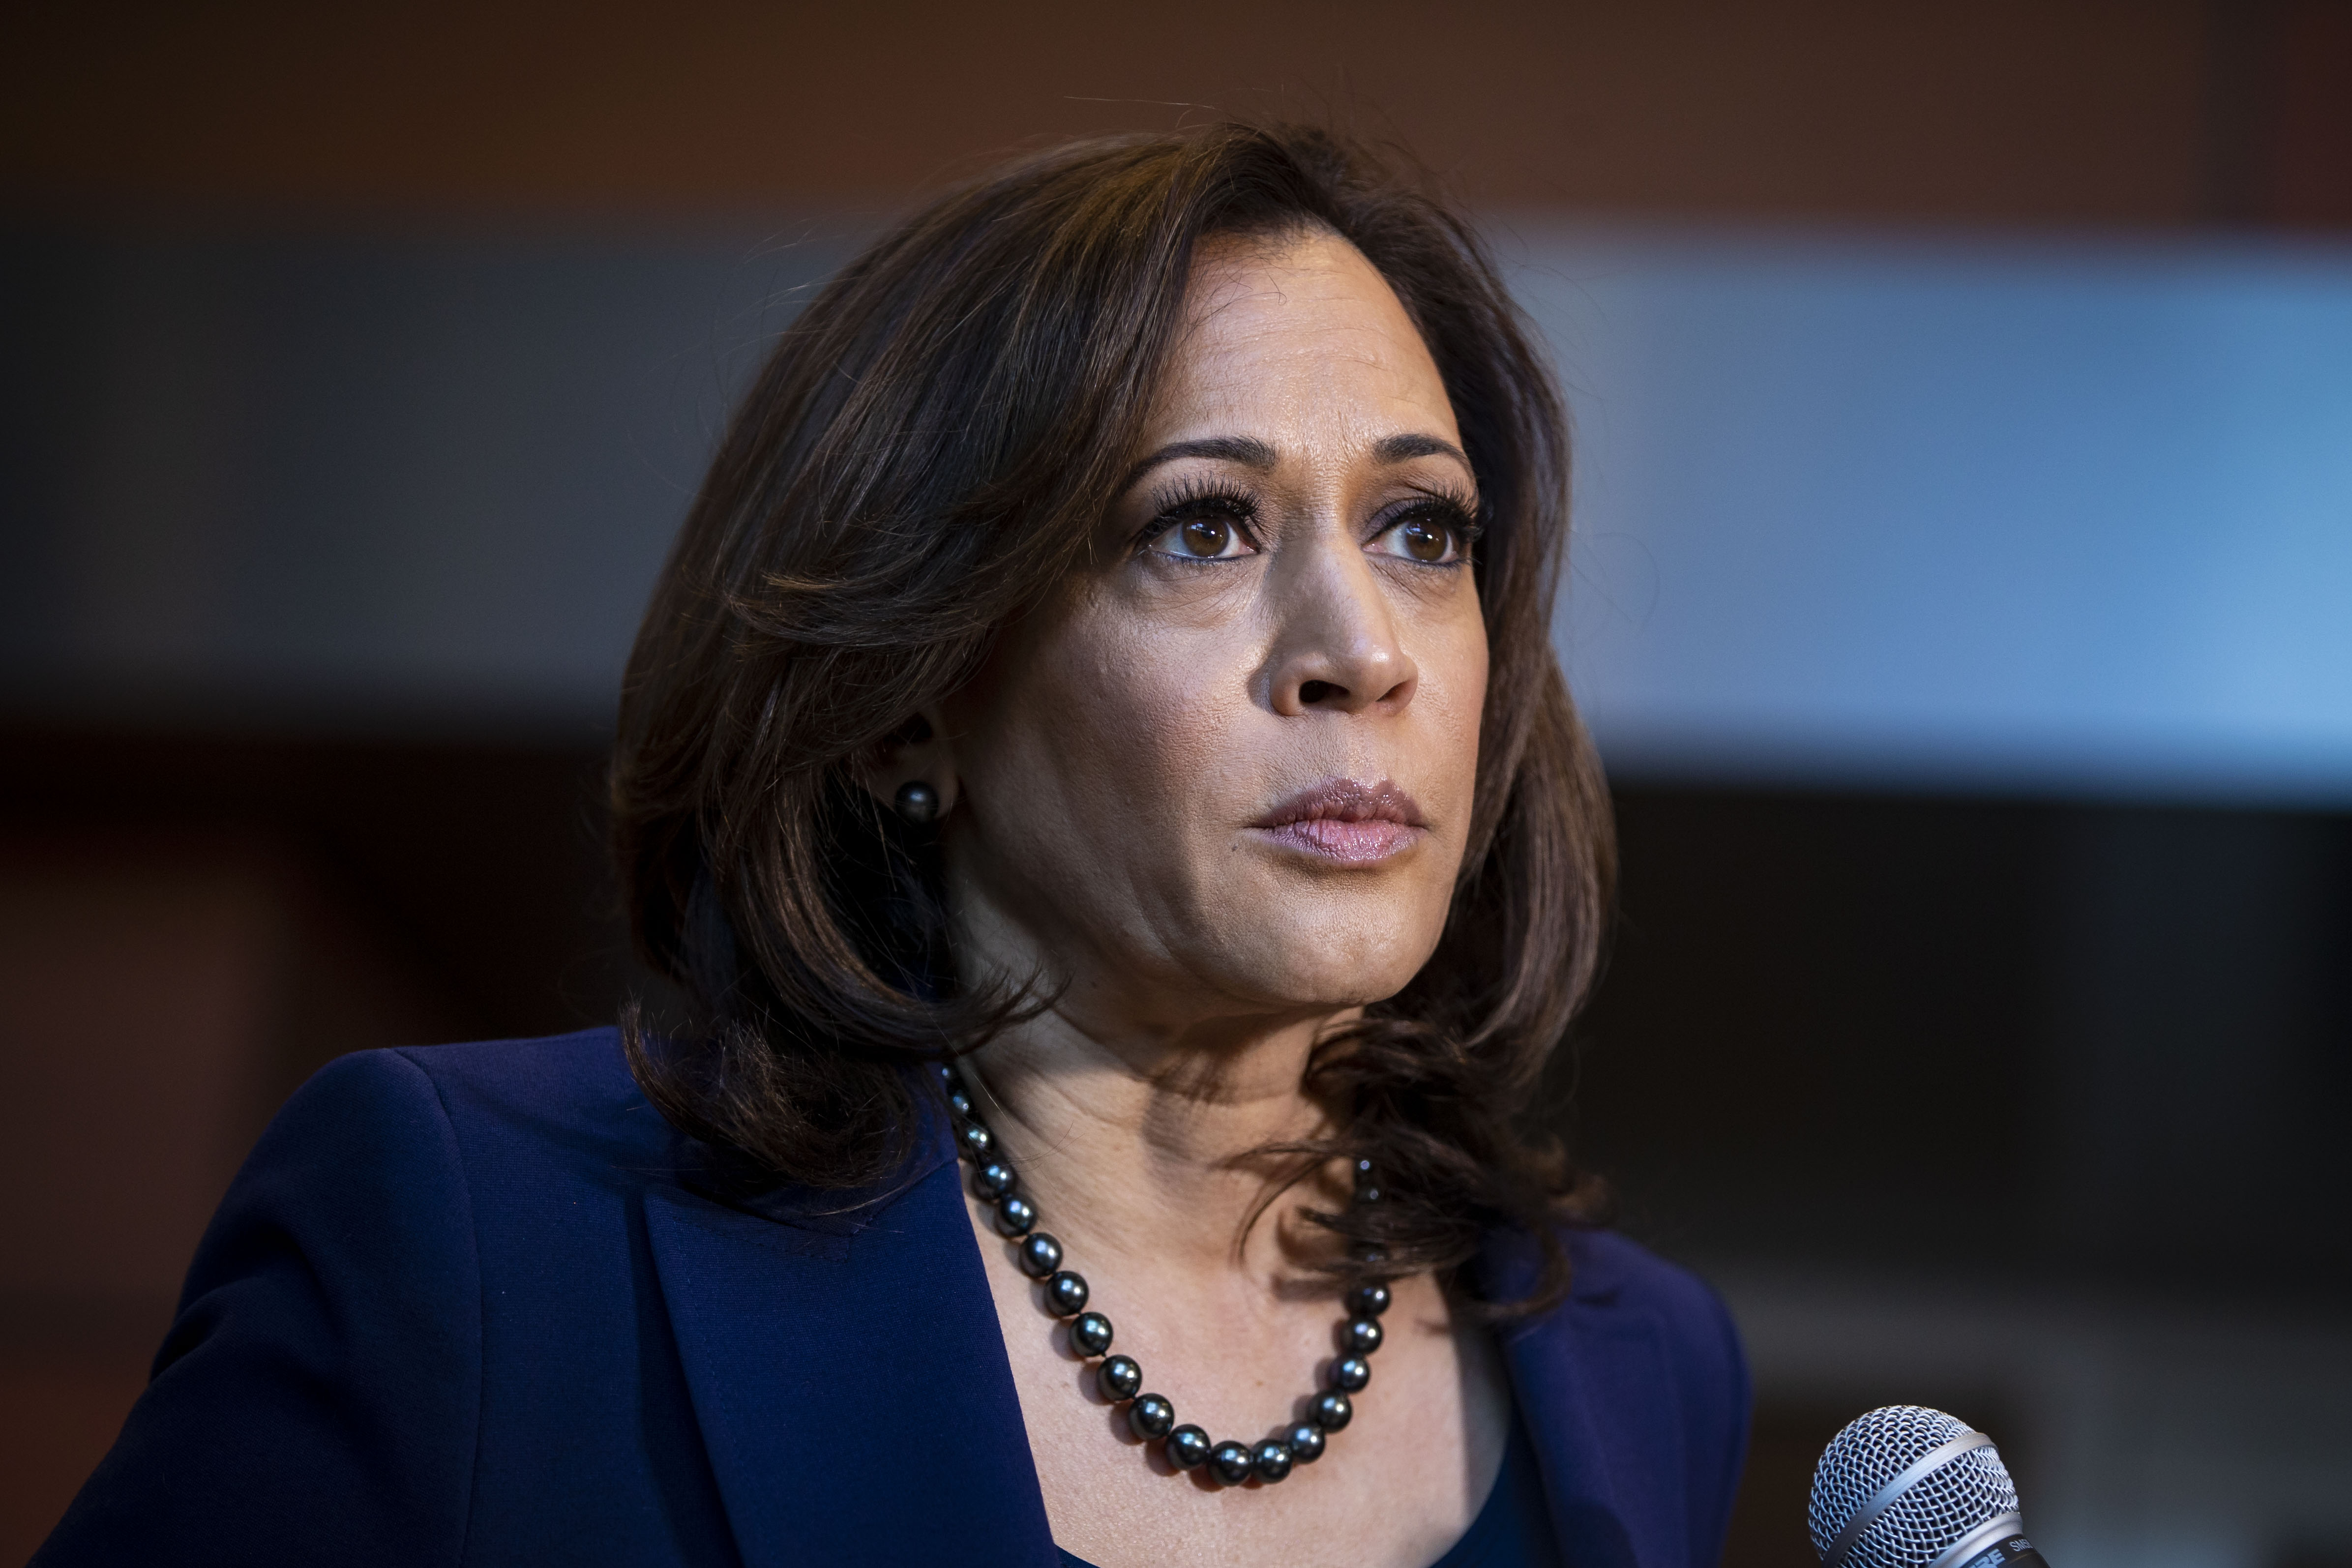 Kamala Harris endorses Biden, who she previously bashed for 'segregationist' busing views